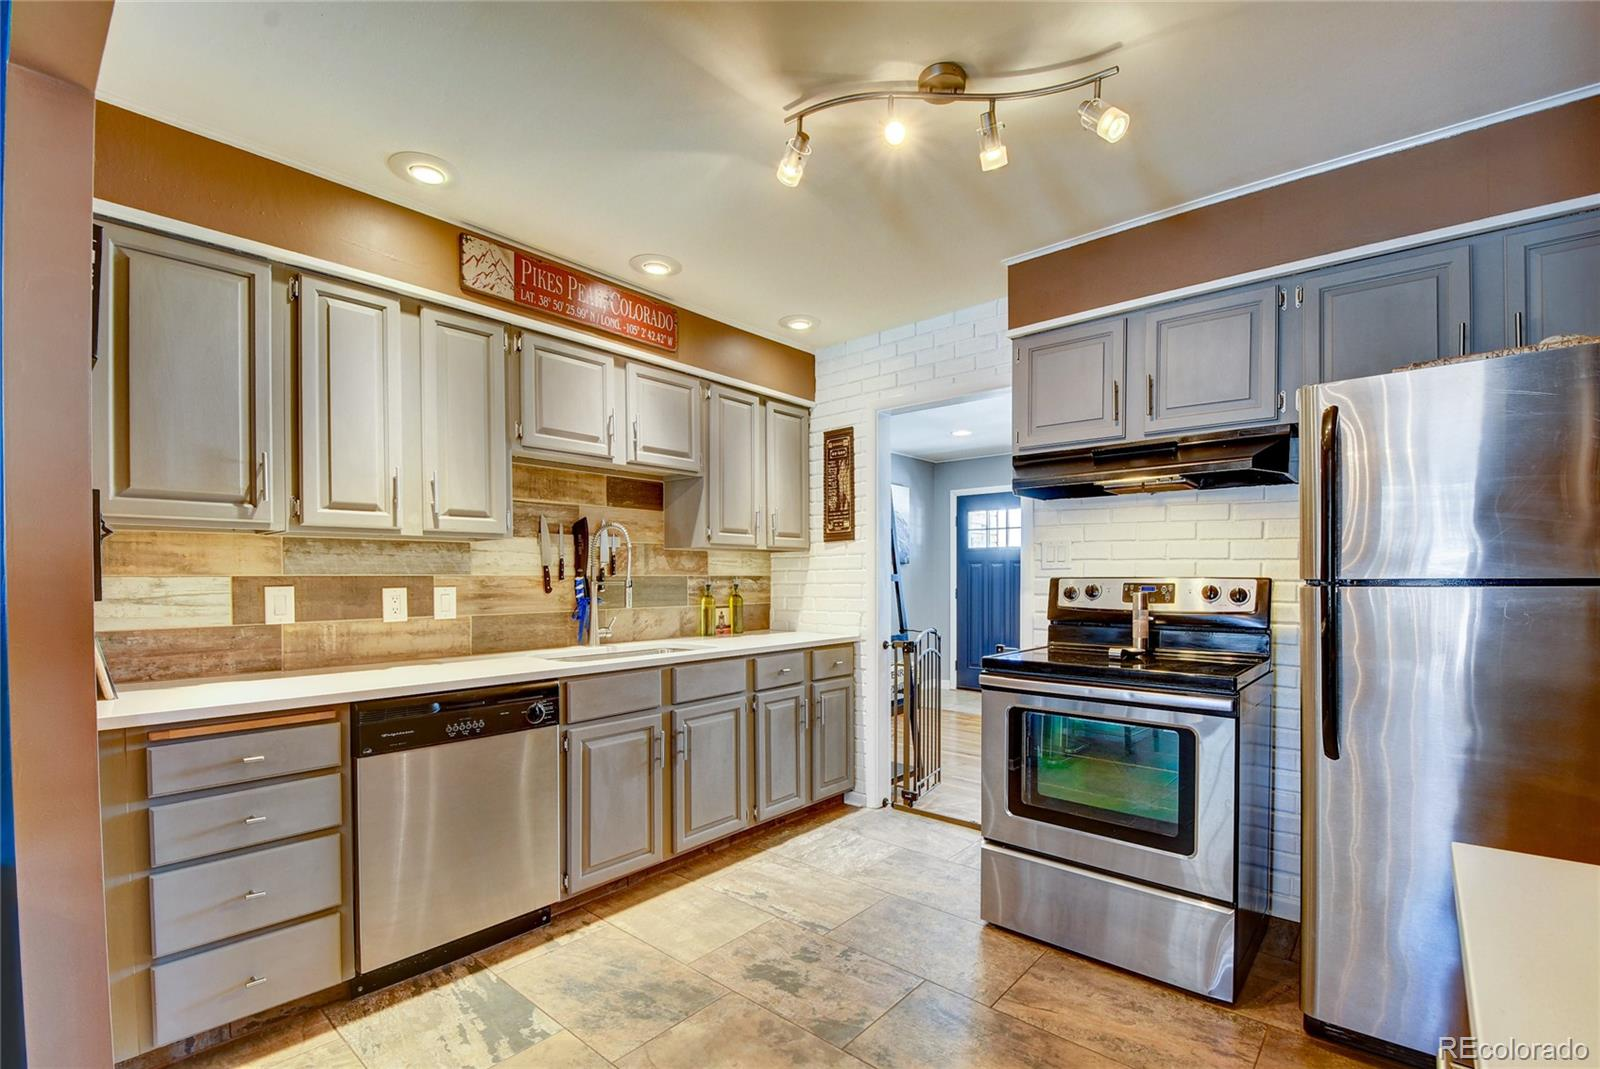 MLS# 5357520 - 10 - 7850 Raleigh Place, Westminster, CO 80030